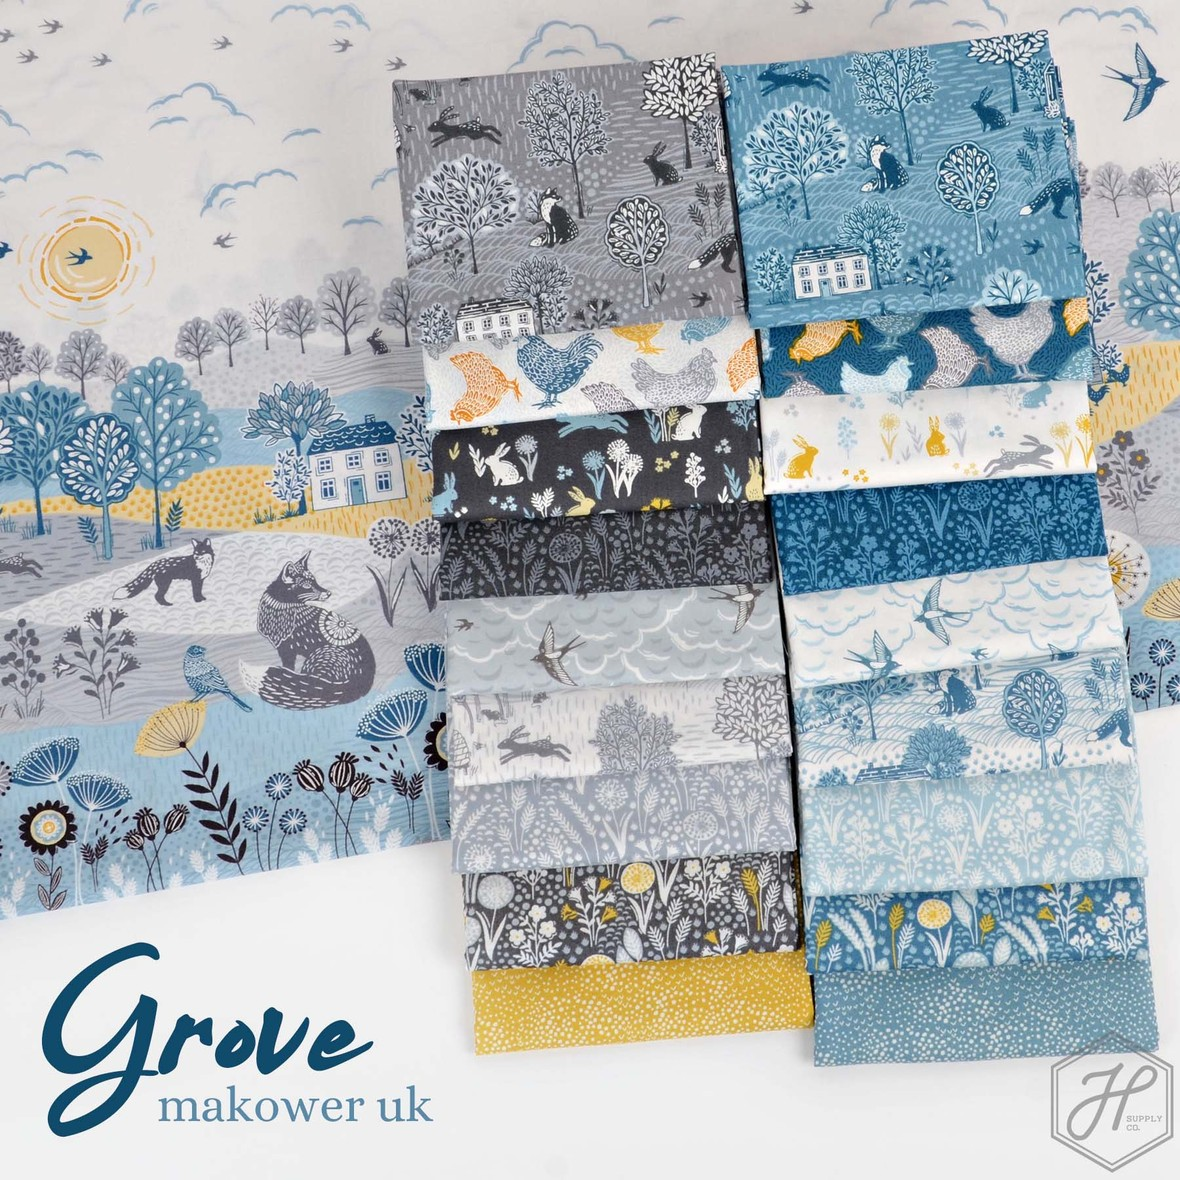 Grove Fabric Poster Makower UK and Andover at Hawthorne Supply Co